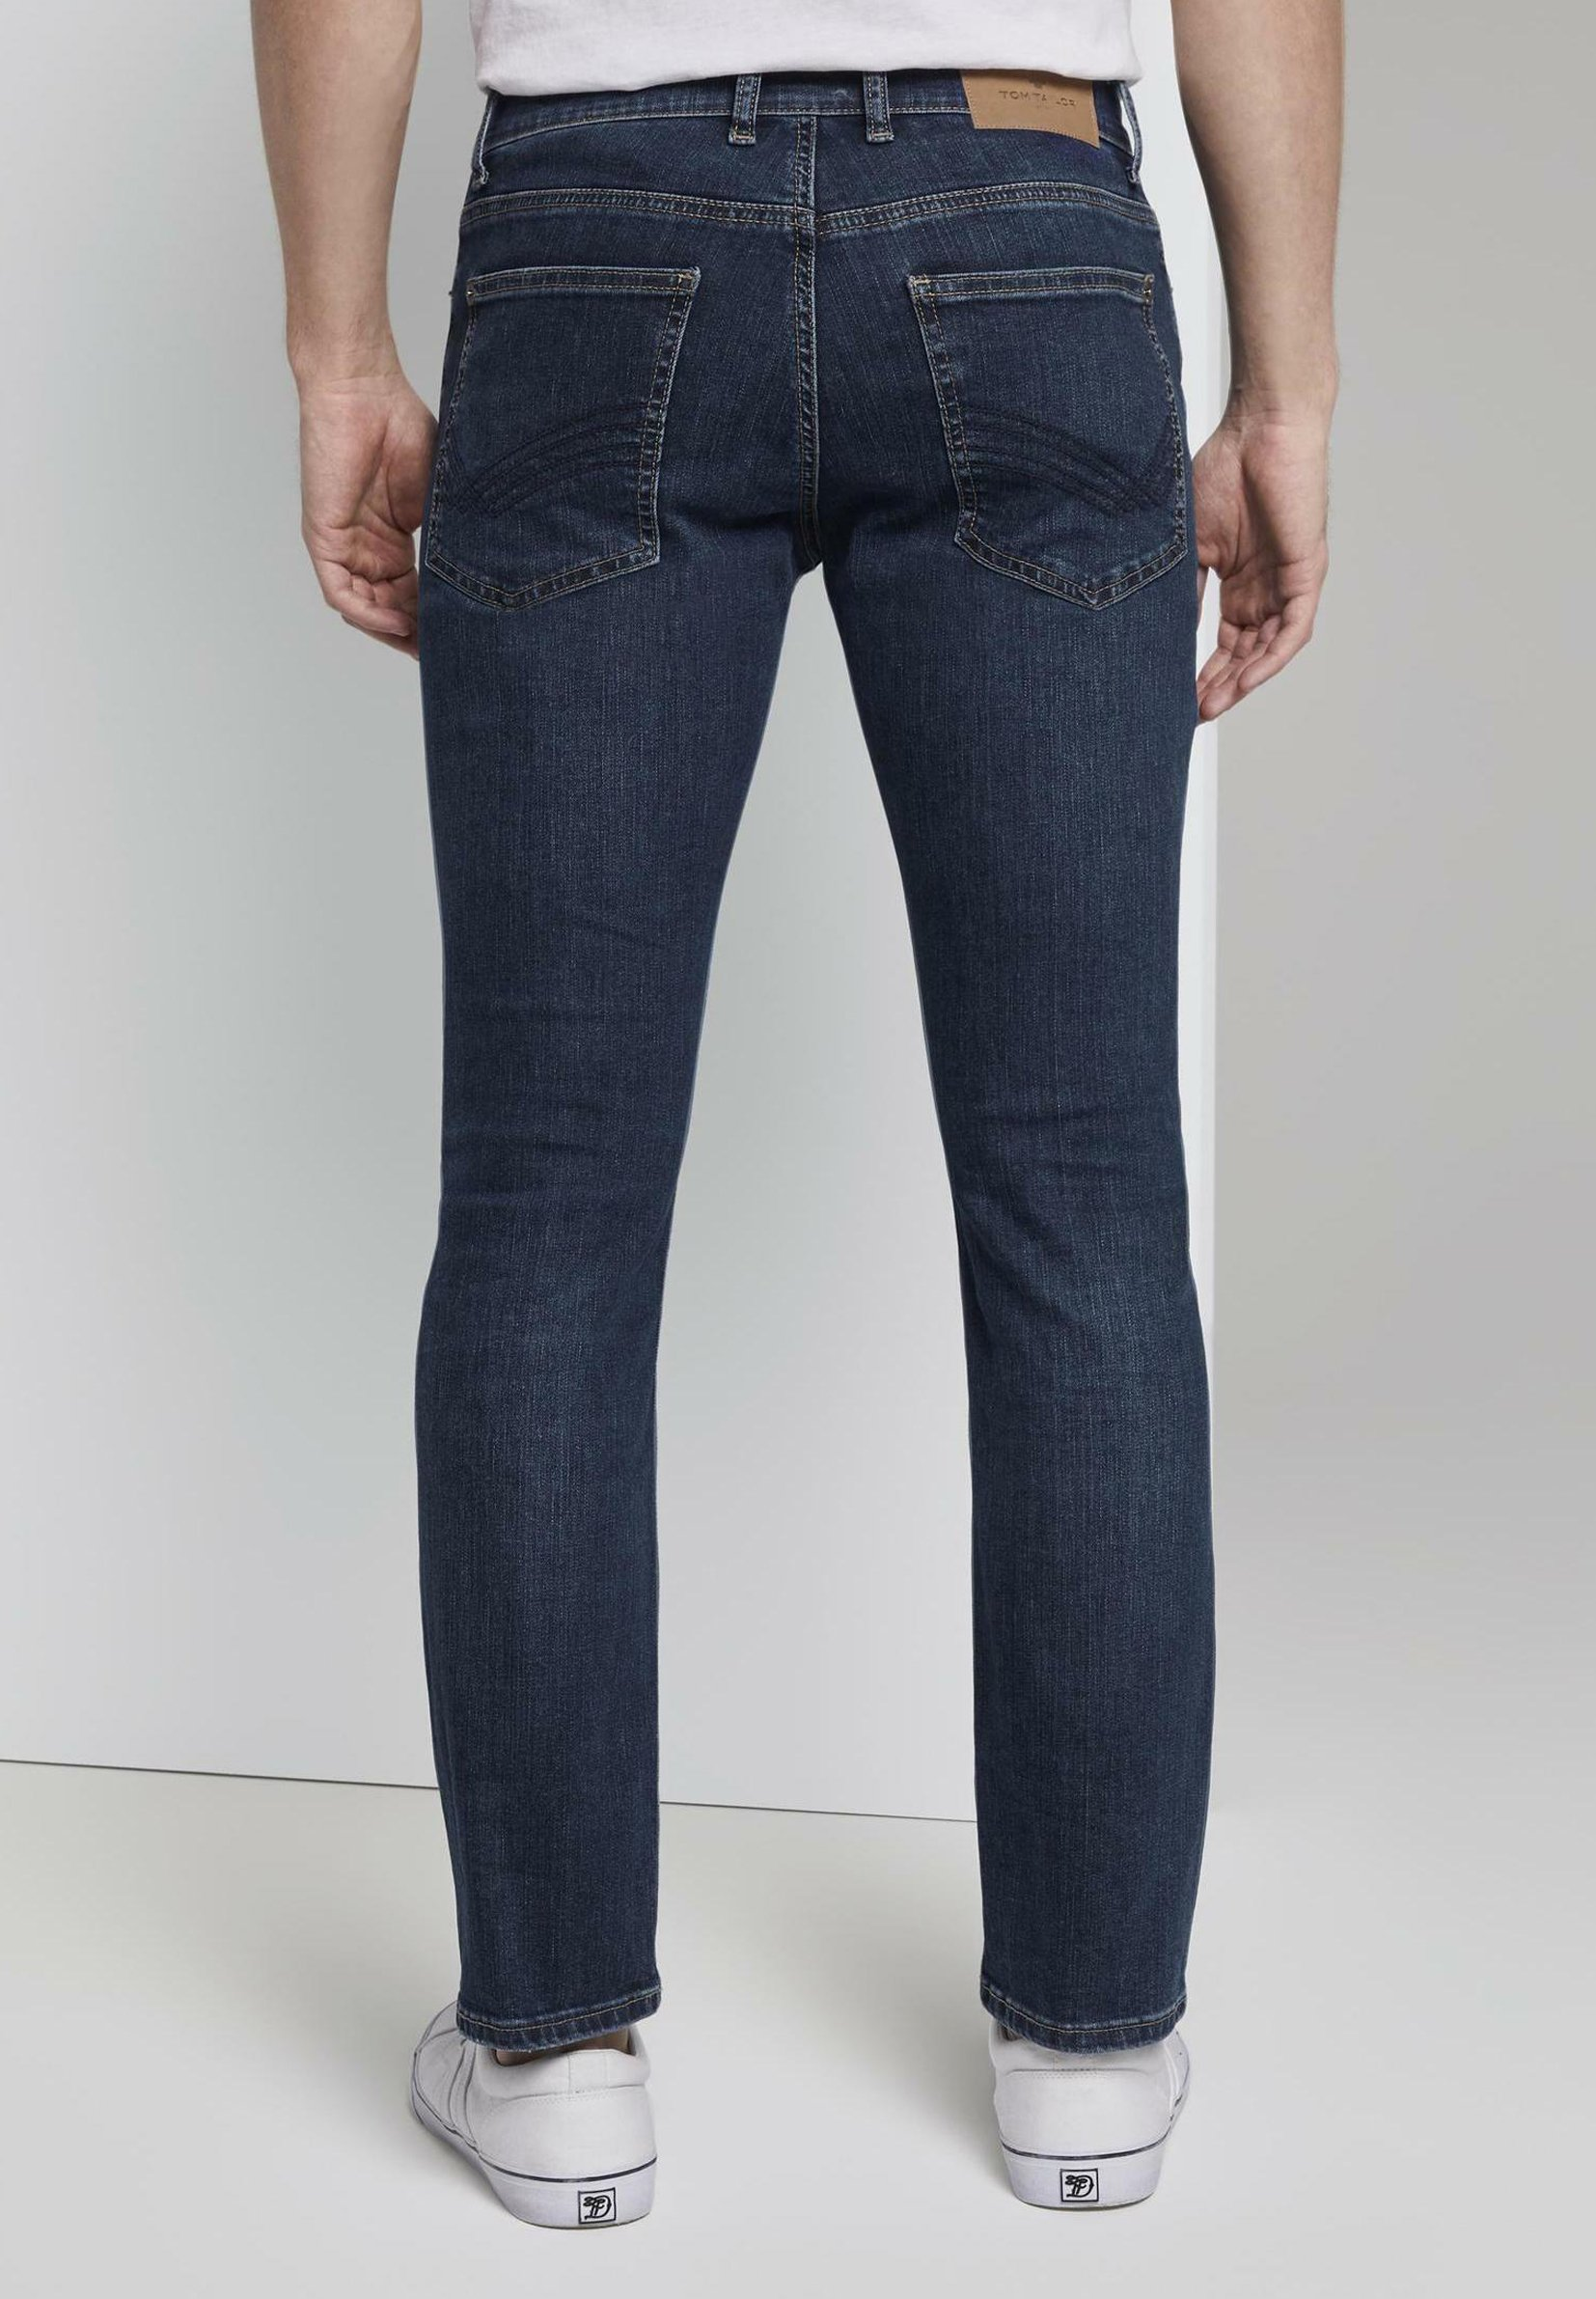 TOM TAILOR TOM TAILOR JEANSHOSEN JOSH REGULAR SLIM JEANS - Jean slim - dark blue denim